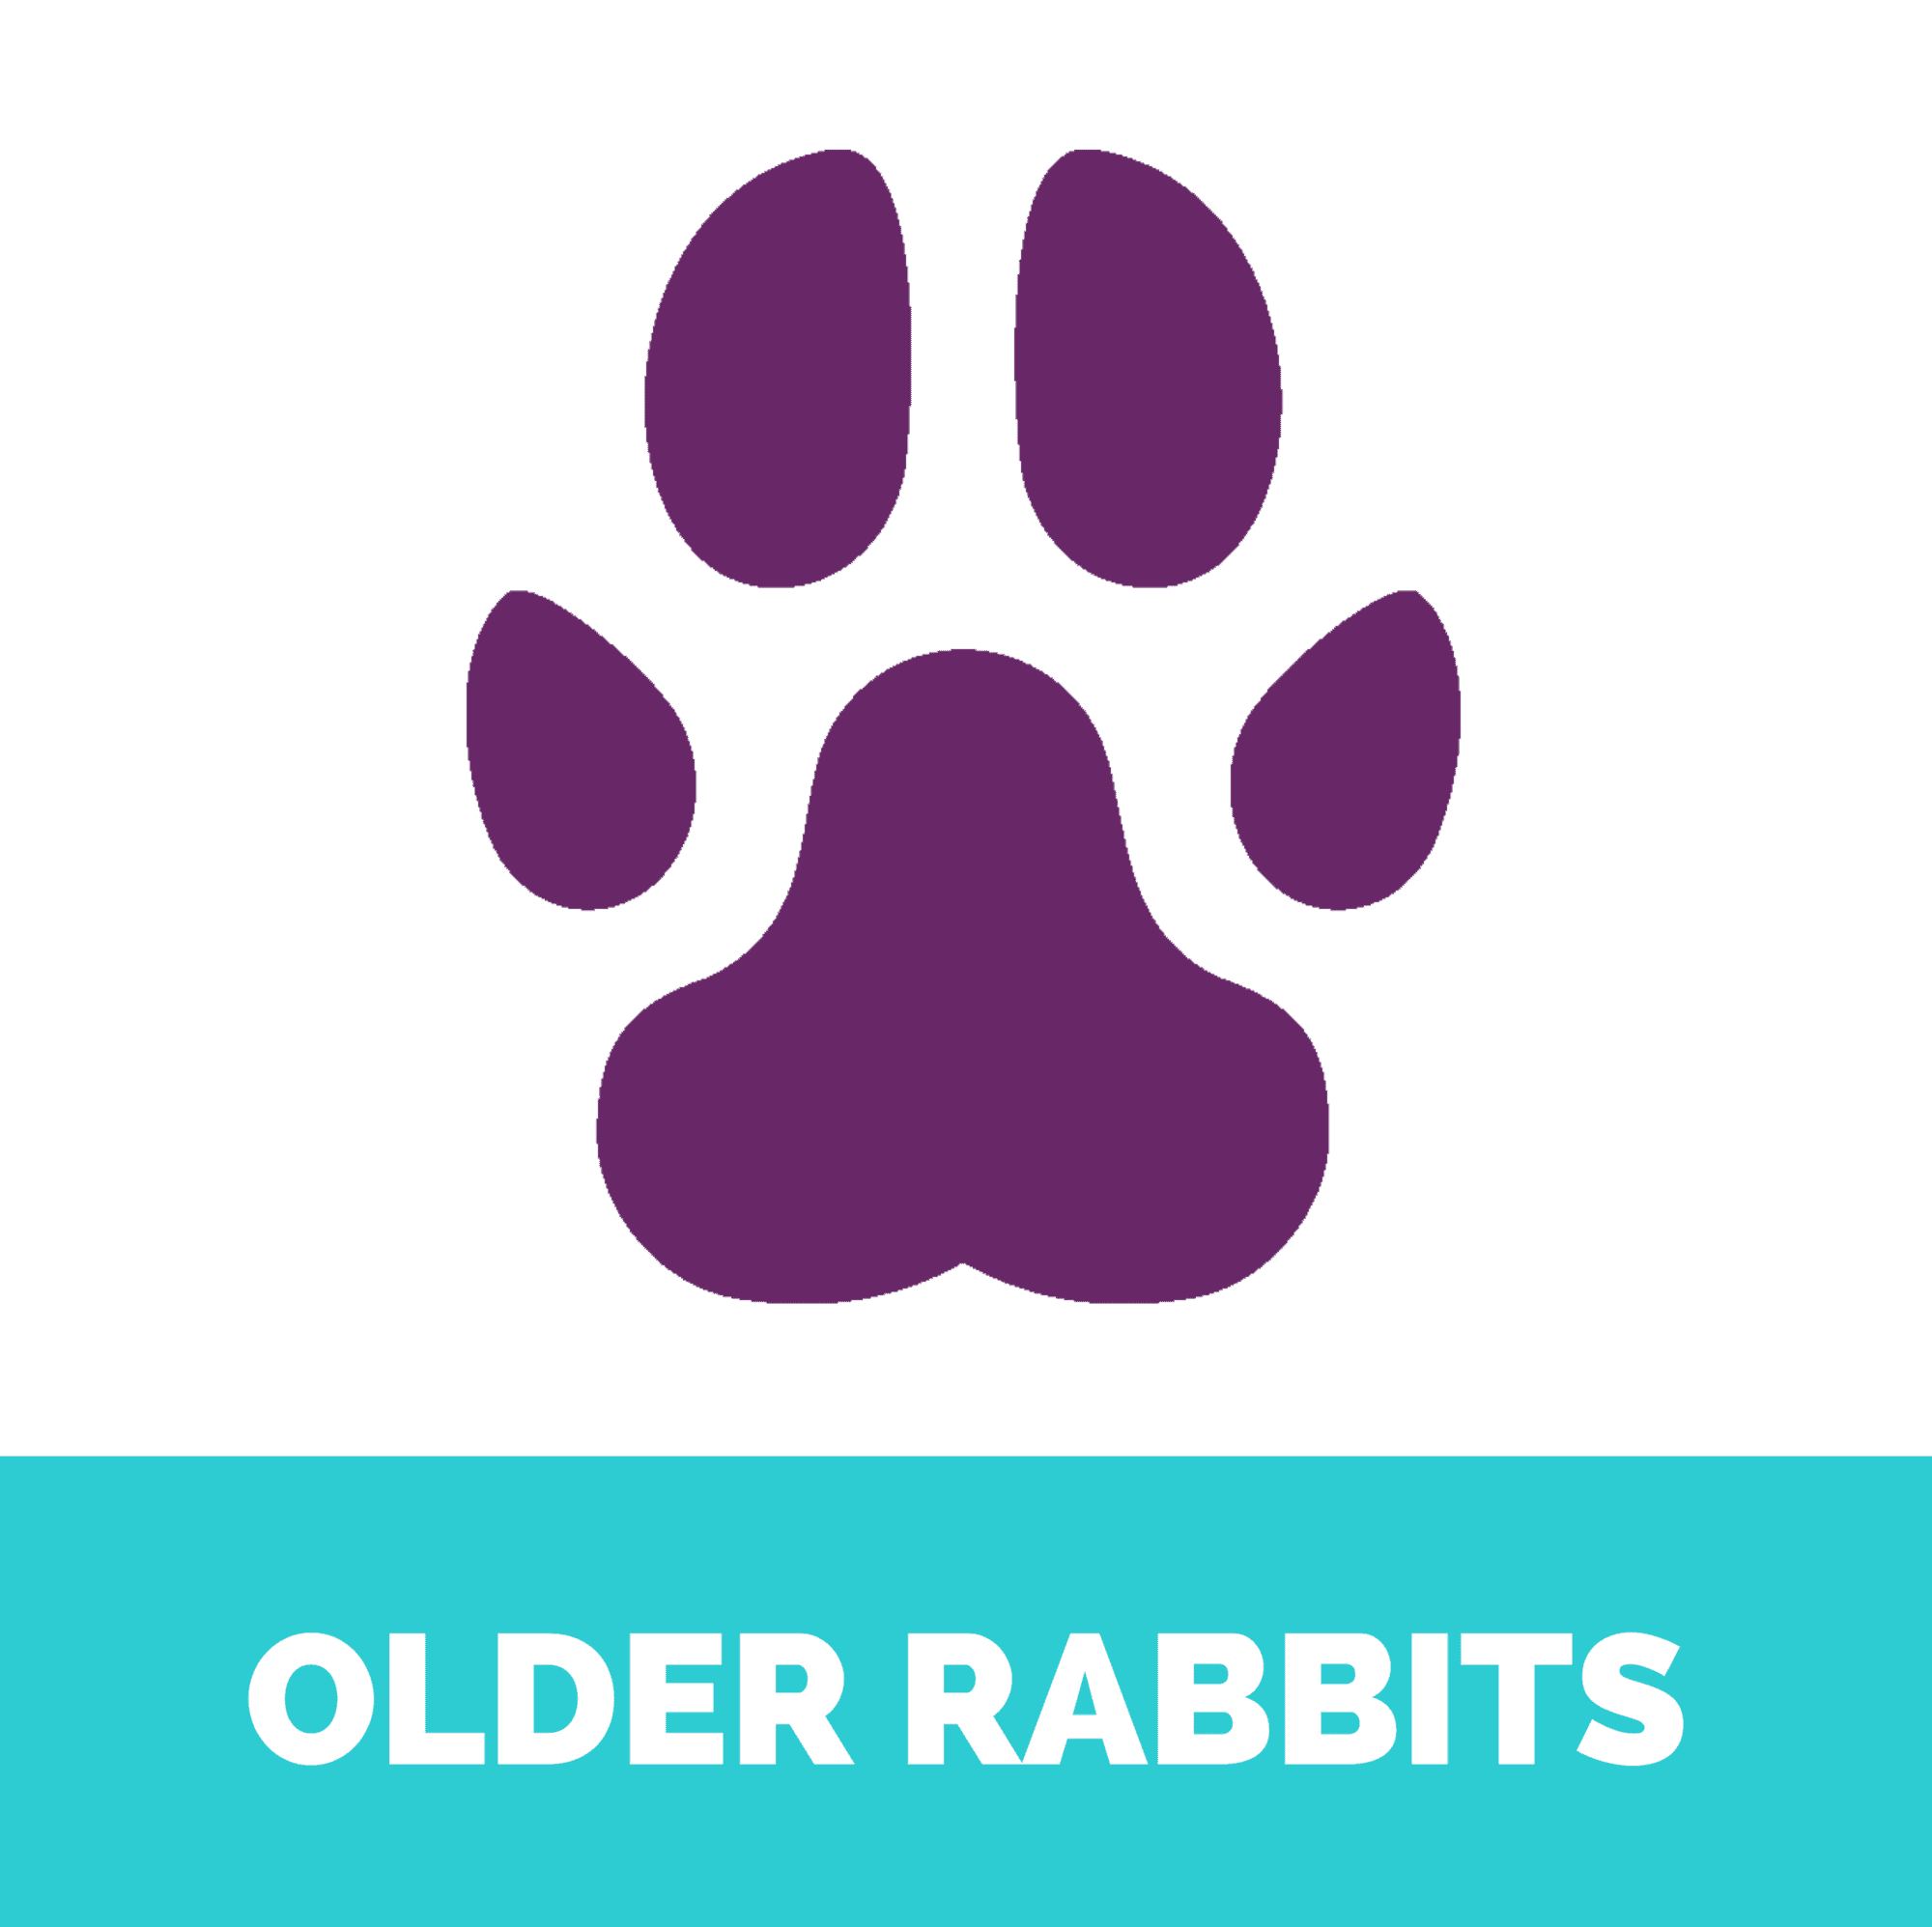 Older rabbits